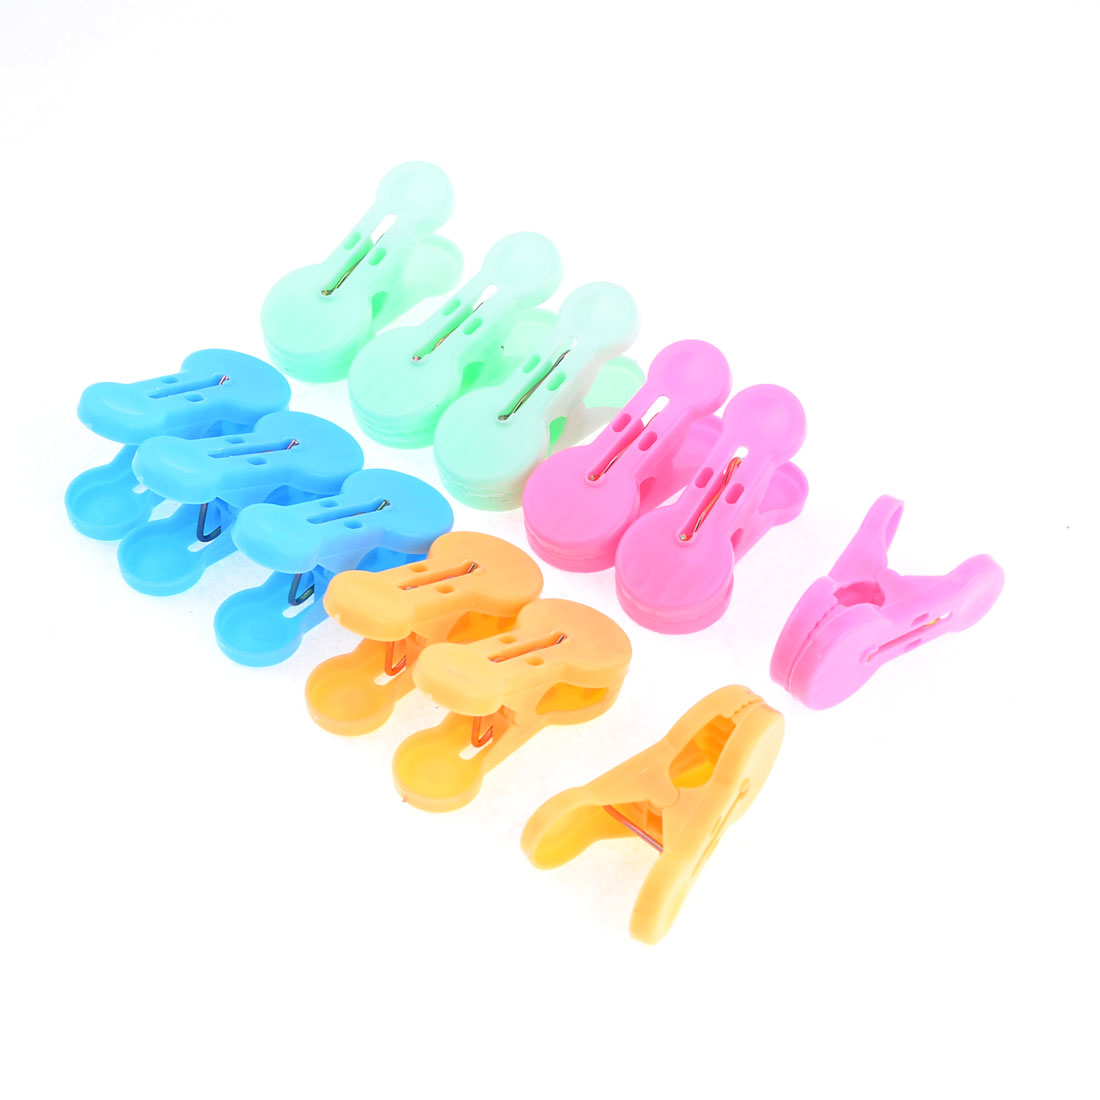 12pcs Household Assorted Color Plastic Balcony Socks Towels Clothes Clips Claws